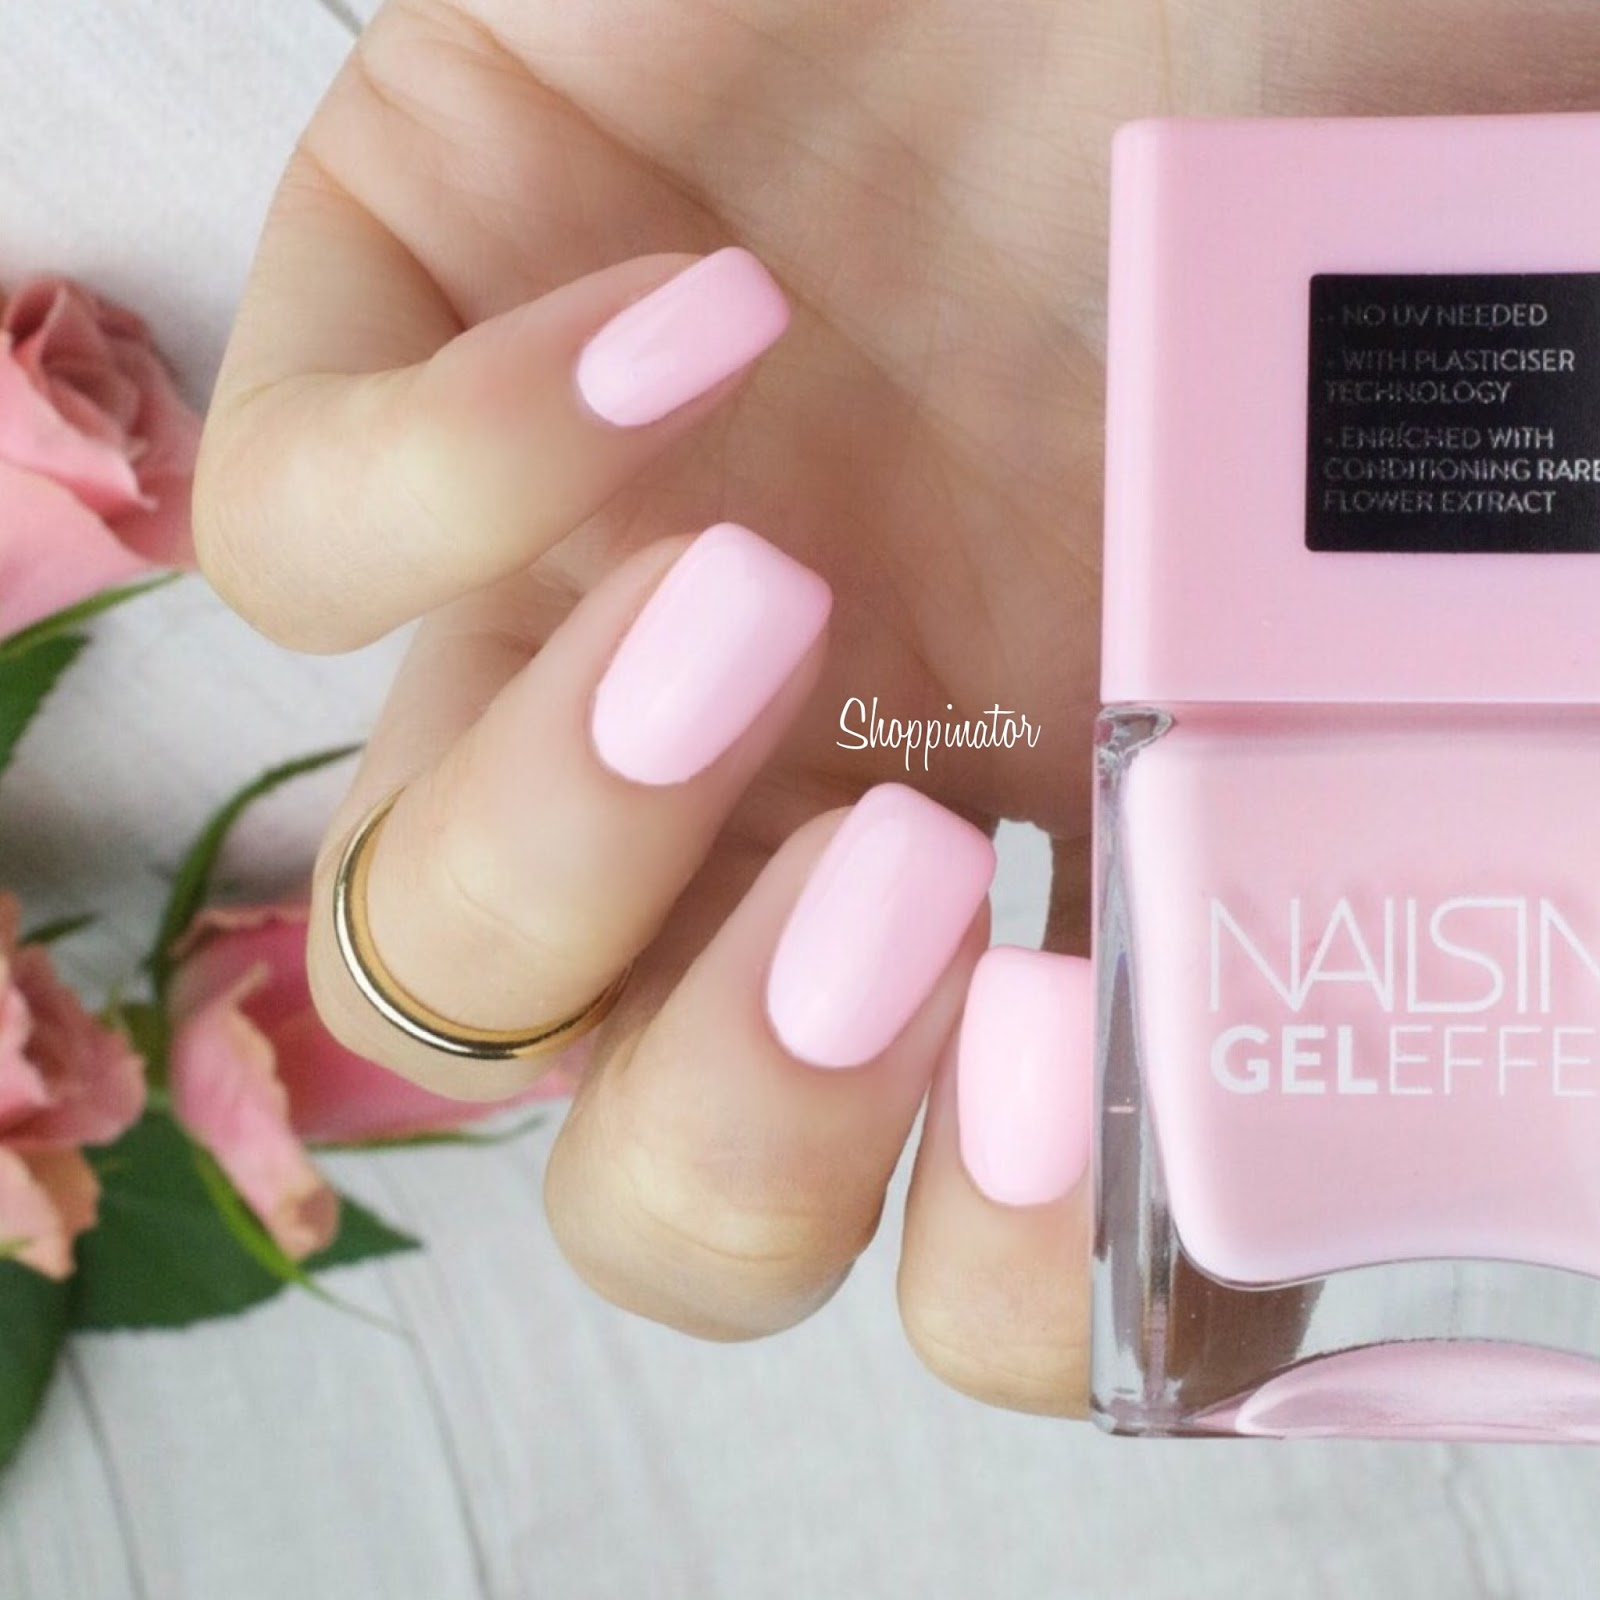 Shoppinator-Nailsinc-Swan-Street-Mint-Nagellack-Lack-Chiltern-Street-Rosa-Covent-Garden-Mews-Columbia-Road-Topcoat-Cherry-Garden-Street